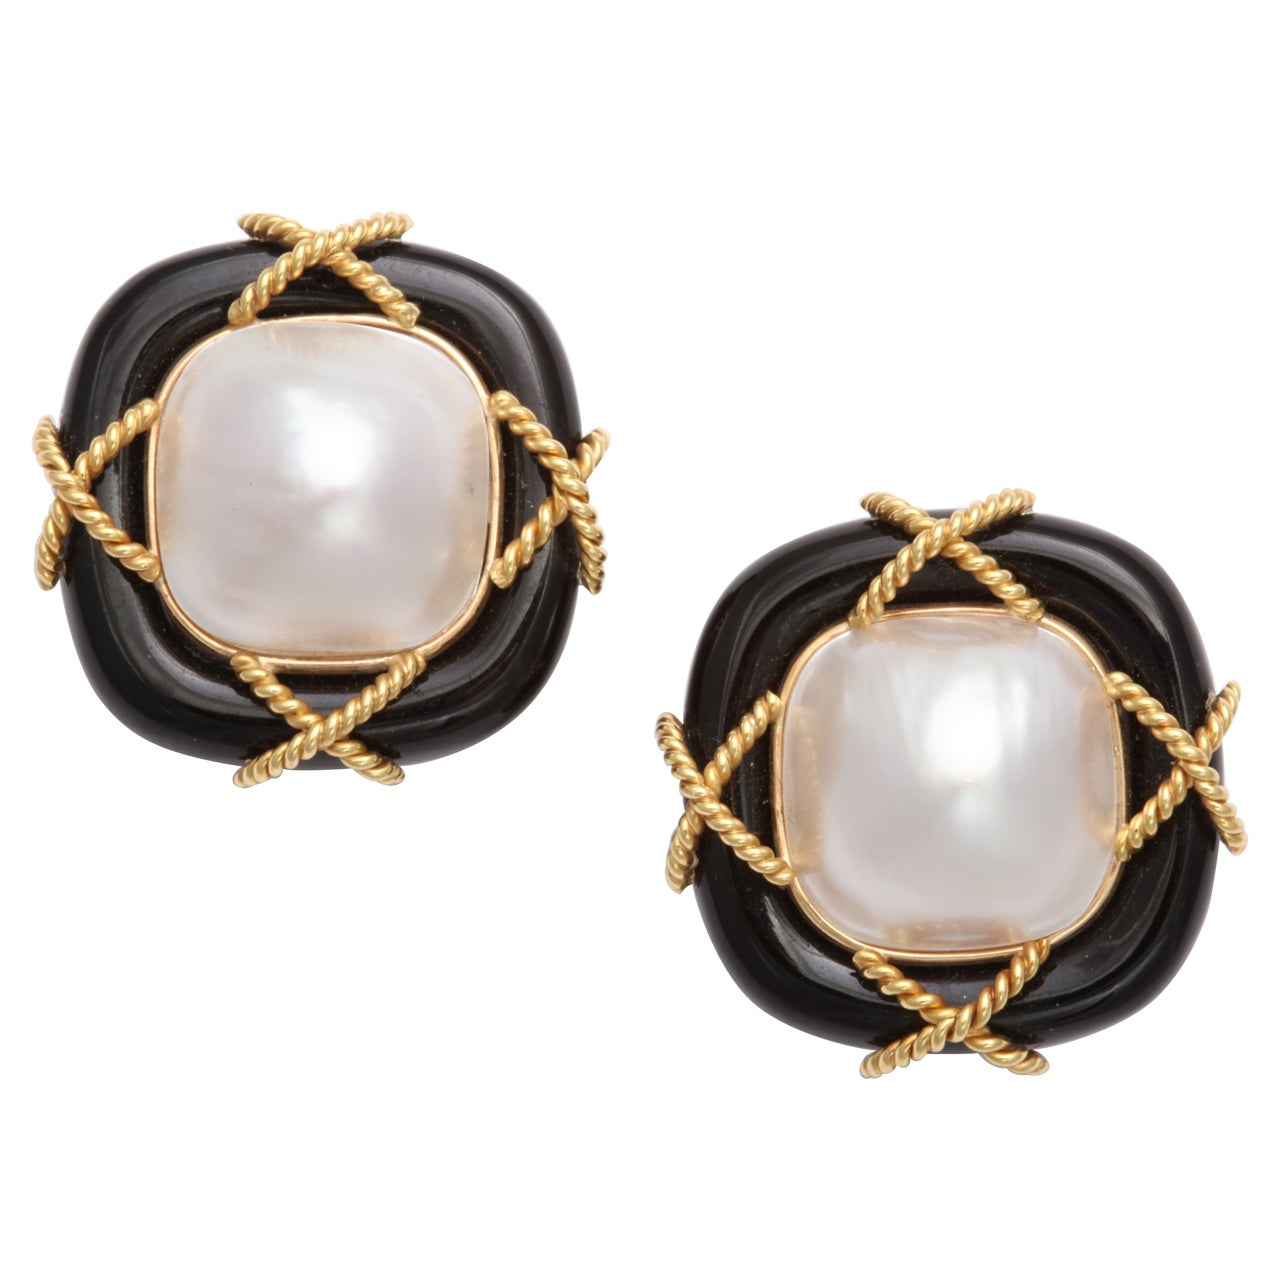 Black Onyx Pearl & Gold Clip on Earrings For Sale